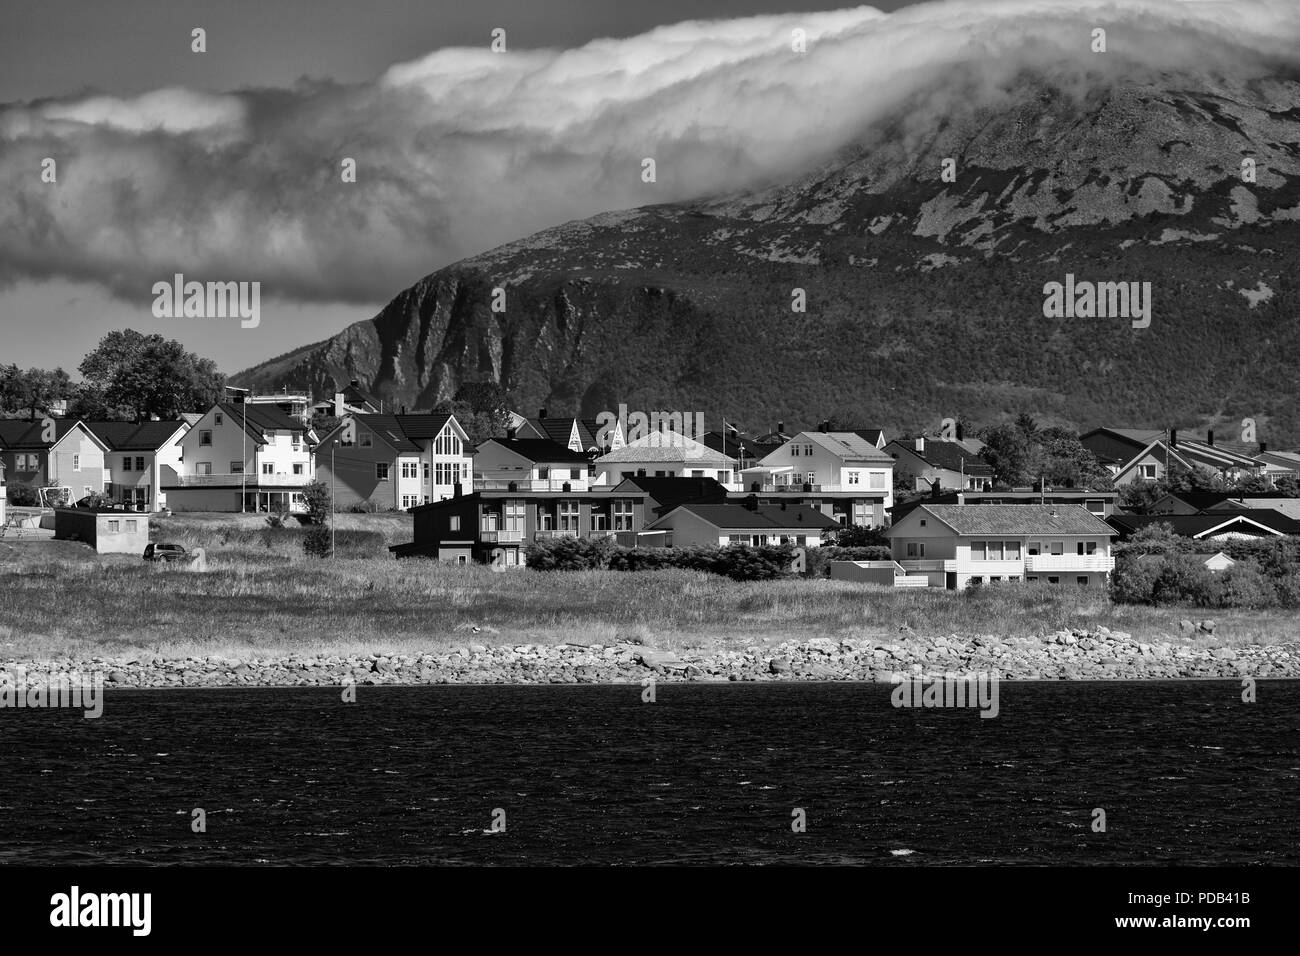 Valderoya Island, Alesund City, More og Romsdal County, Norway - Stock Image